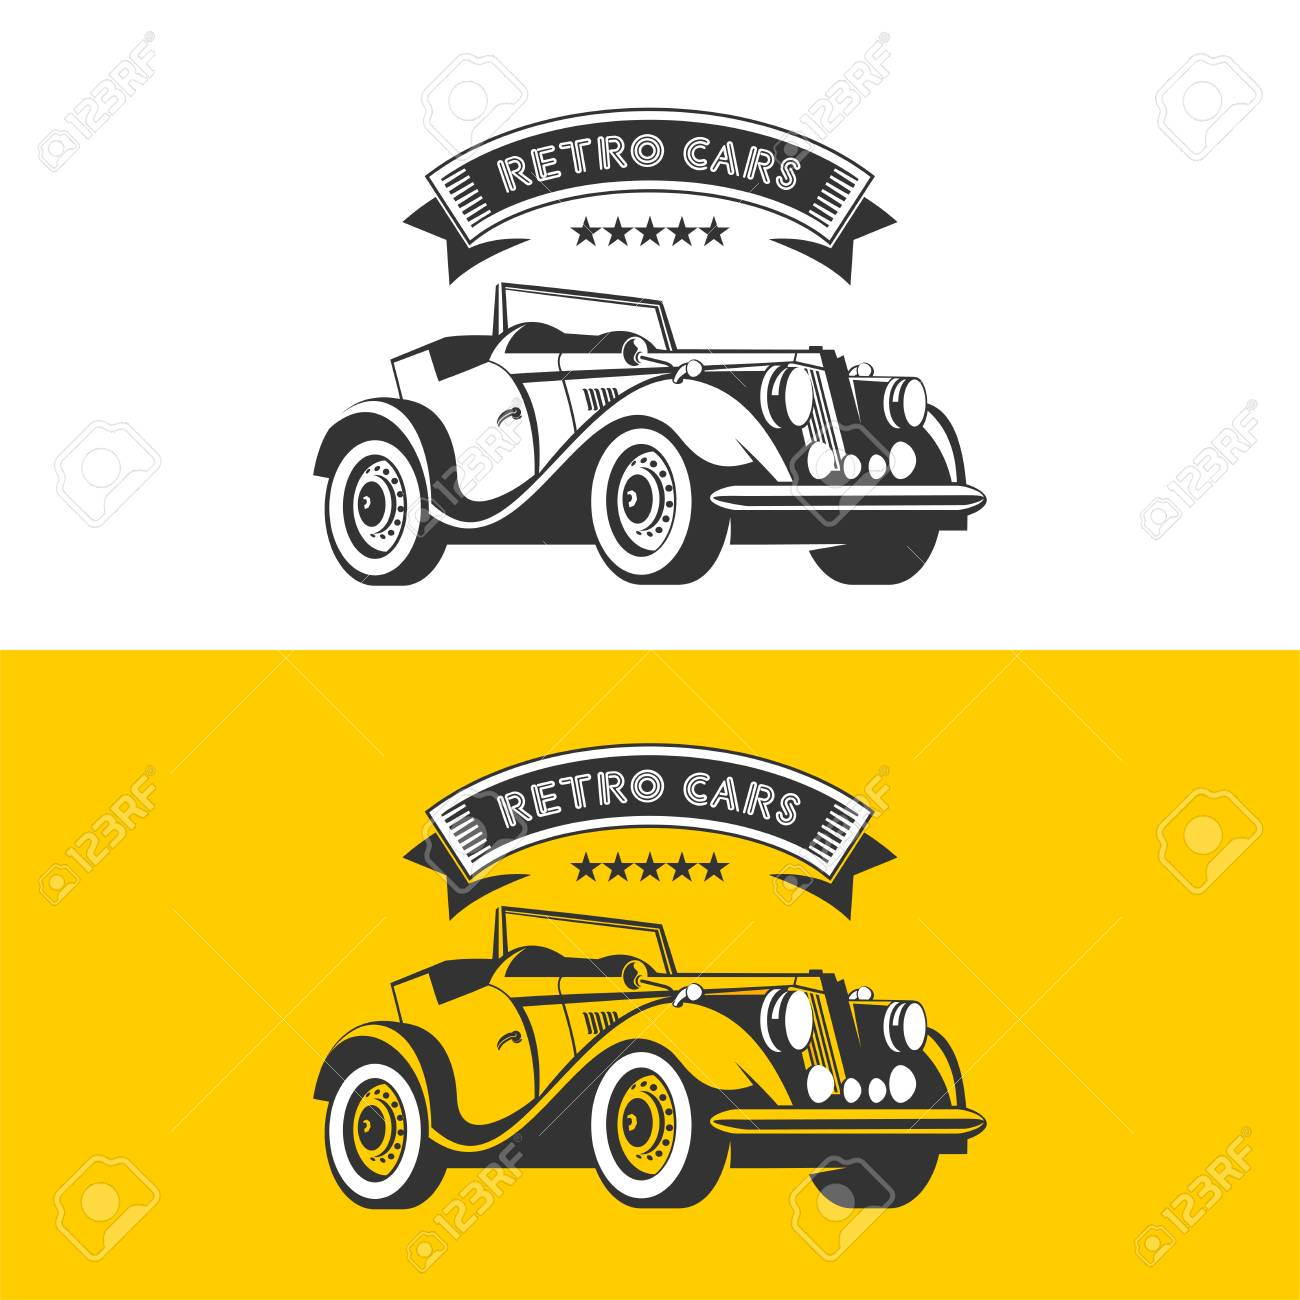 rental of vintage cars vector logo vintage car convertible rh 123rf com vintage car vector art vintage car vector front